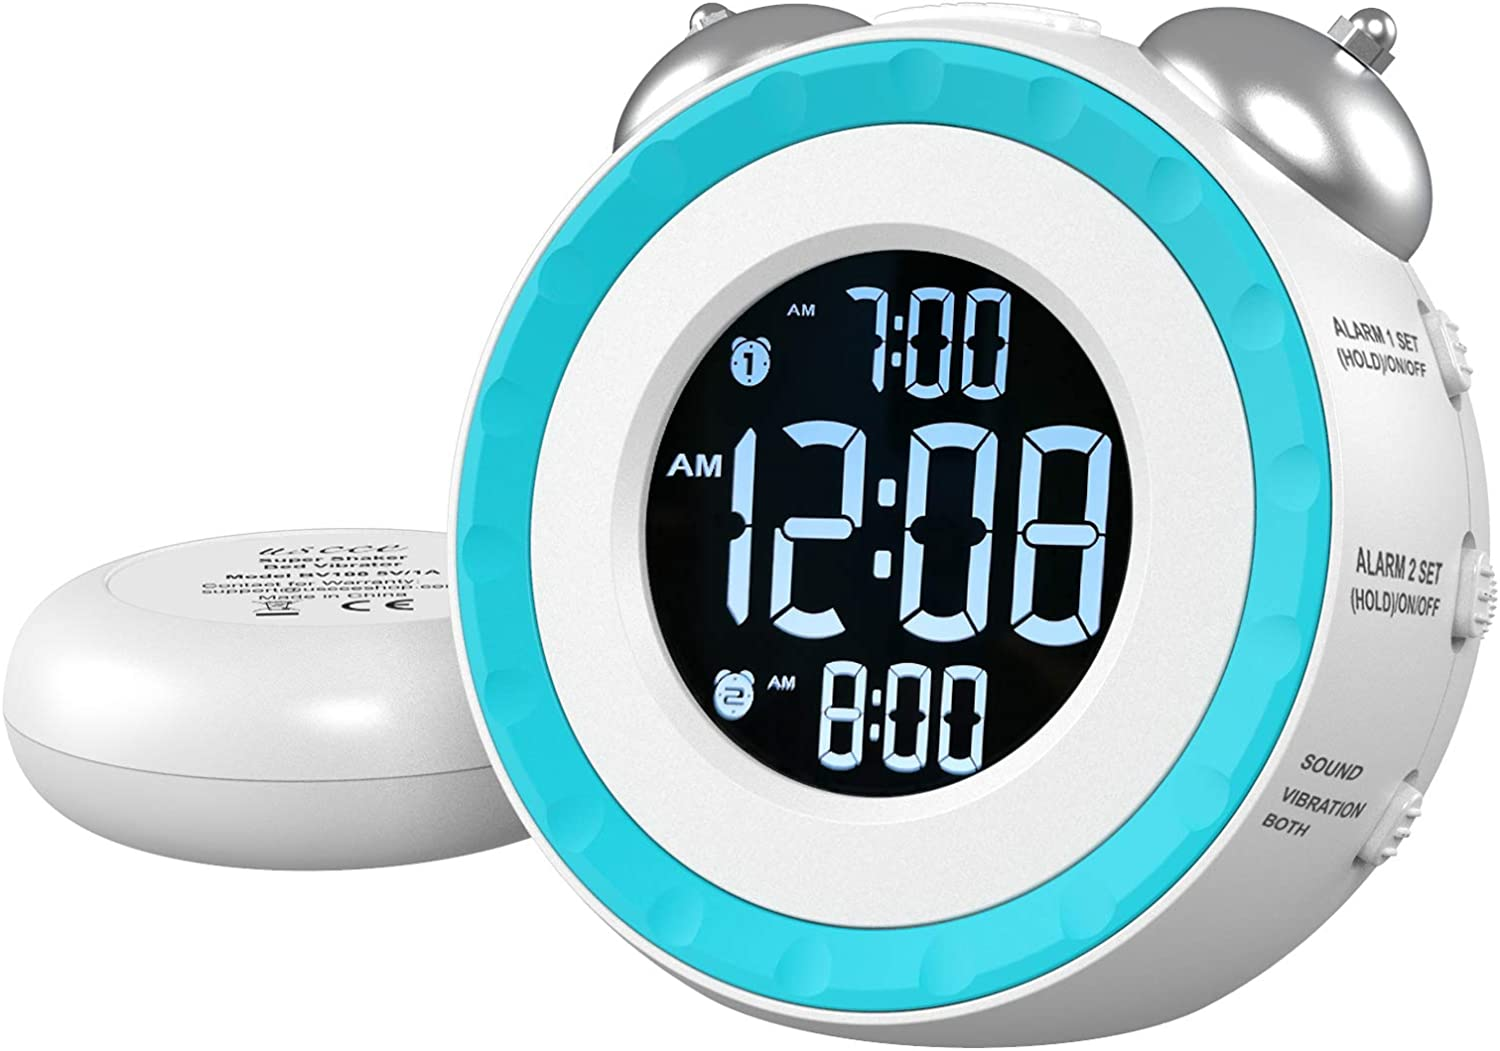 USCCE Loud Dual Alarm Clock with Bed Shaker - 0-100% Dimmer, Vibrating Alarm Clock for Heavy Sleepers or Hearing Impaired, Easy to Set, USB Charging Port, Snooze, Battery Backup (White)